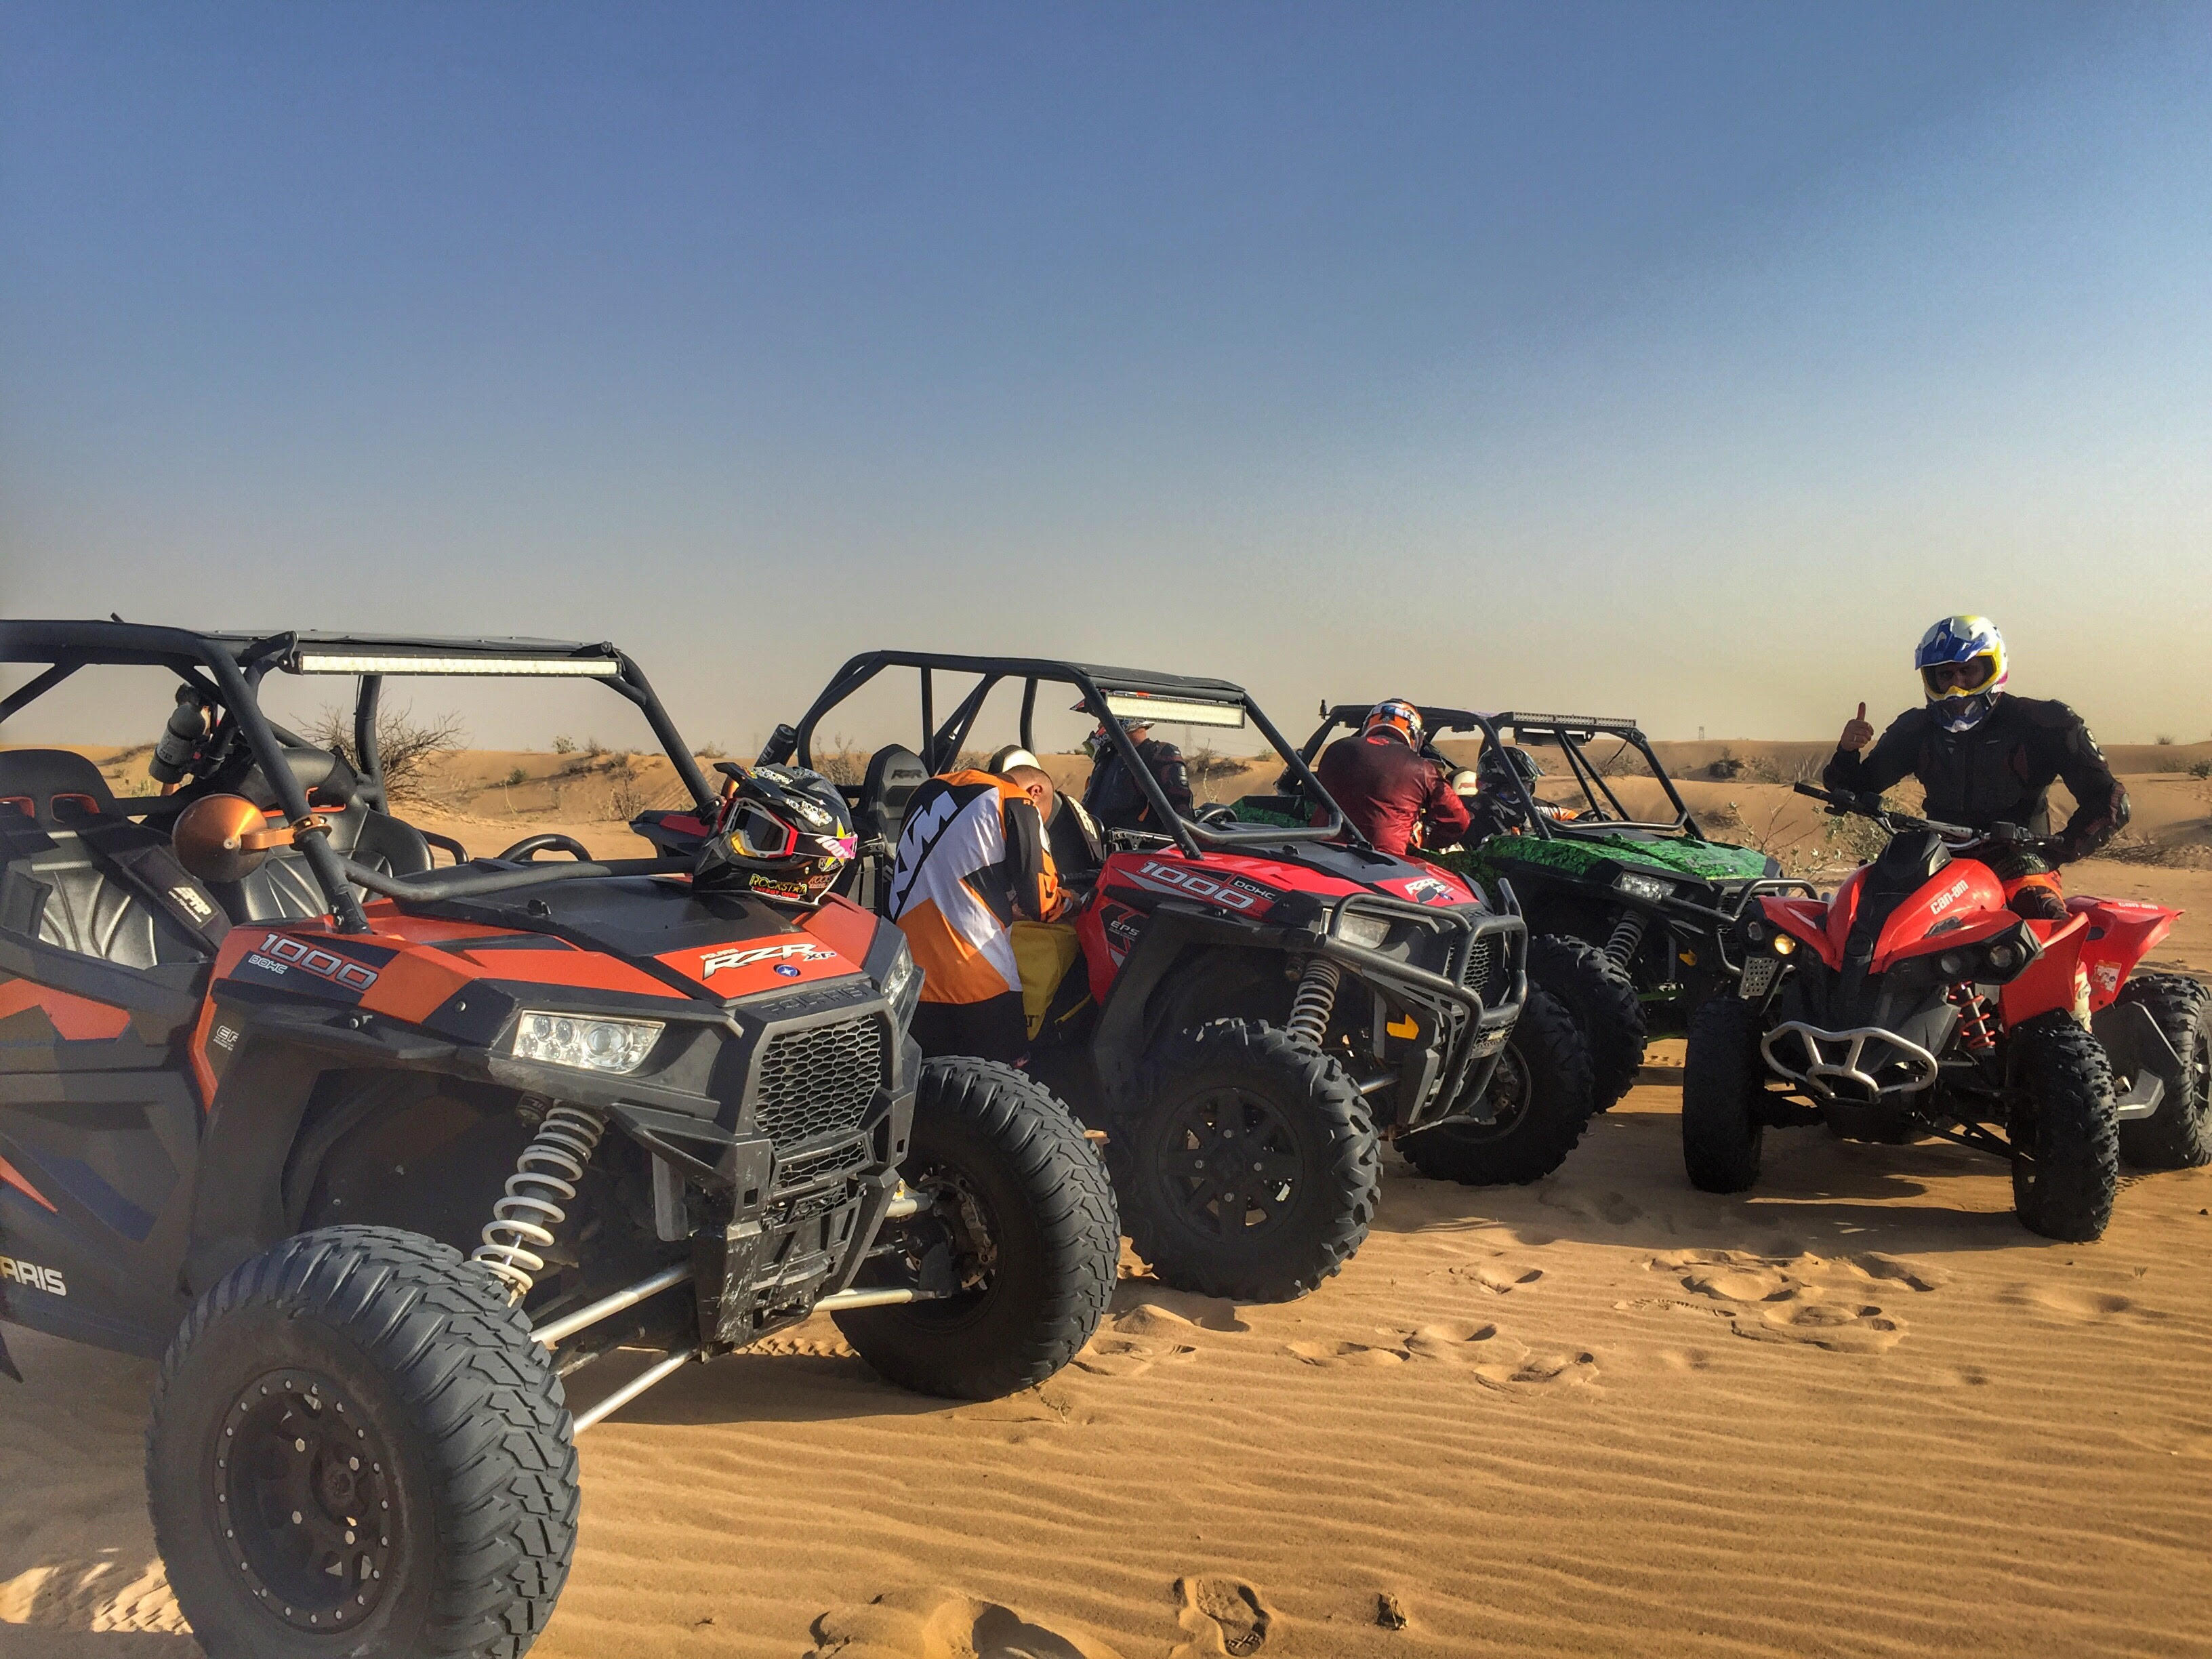 dune buggies in Dubai